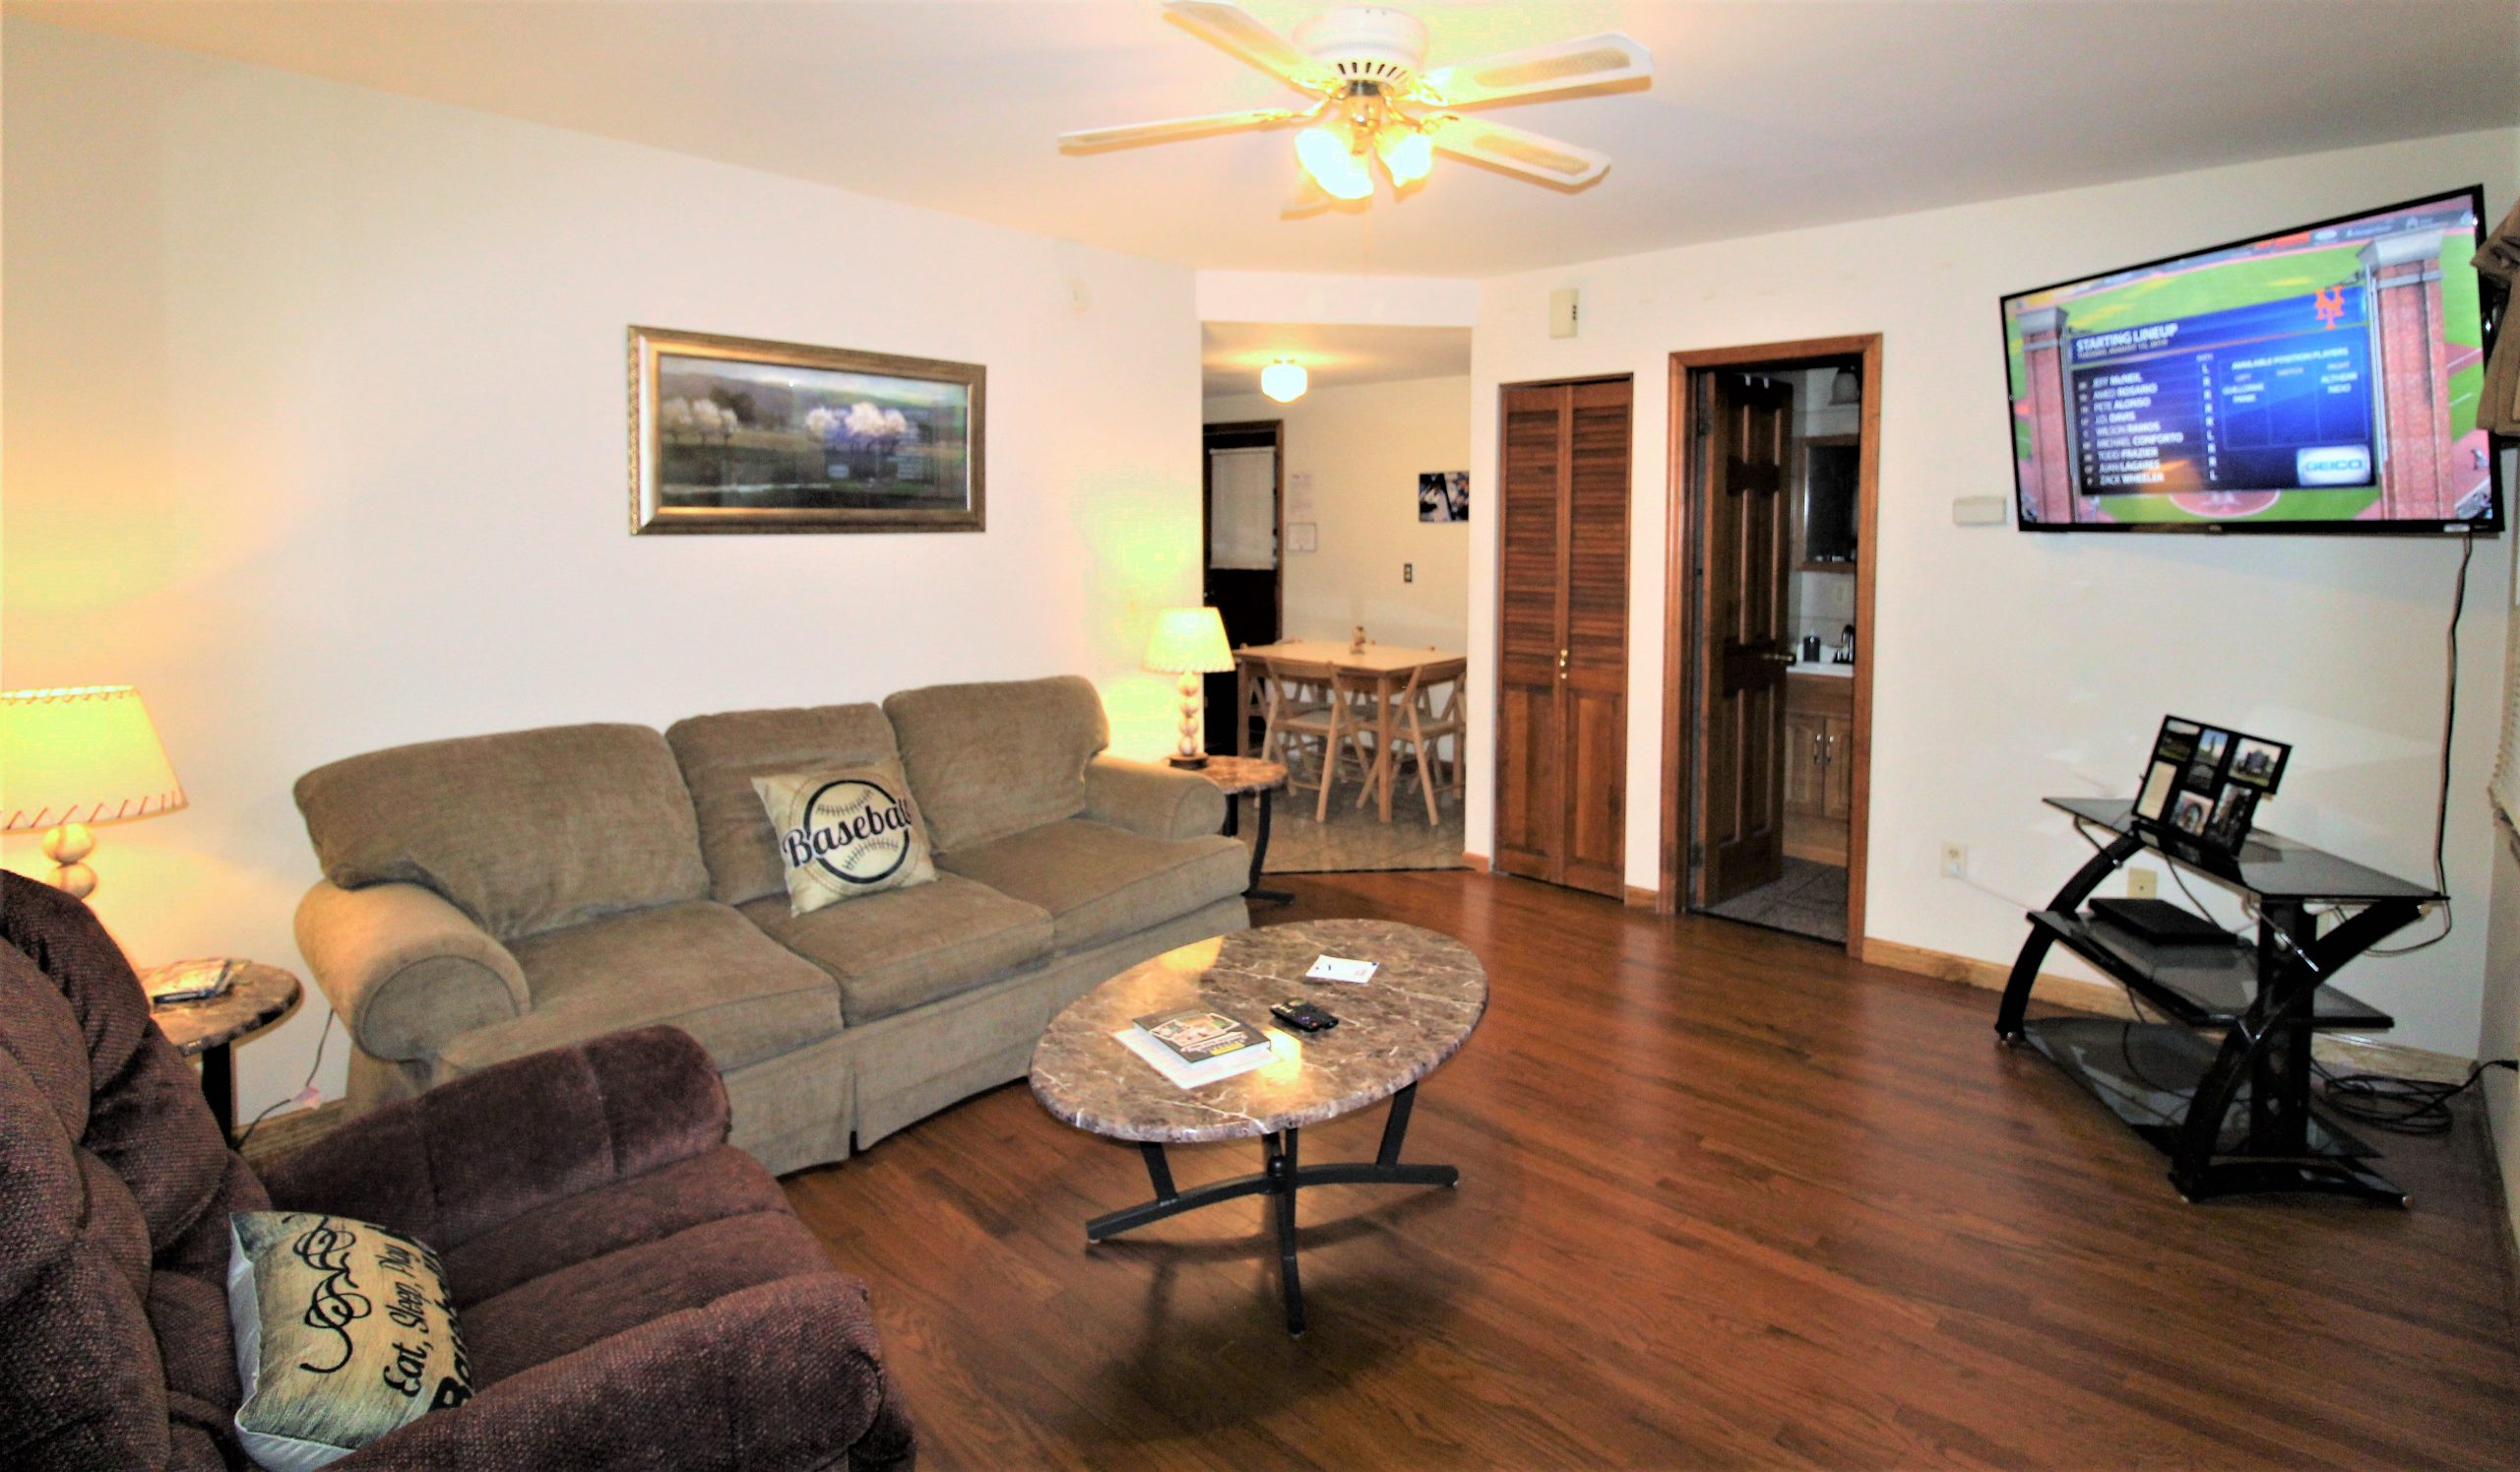 115 River Street #1 is a ground floor, 2 bedroom apartment offered by Osterhoudt Student Rentals